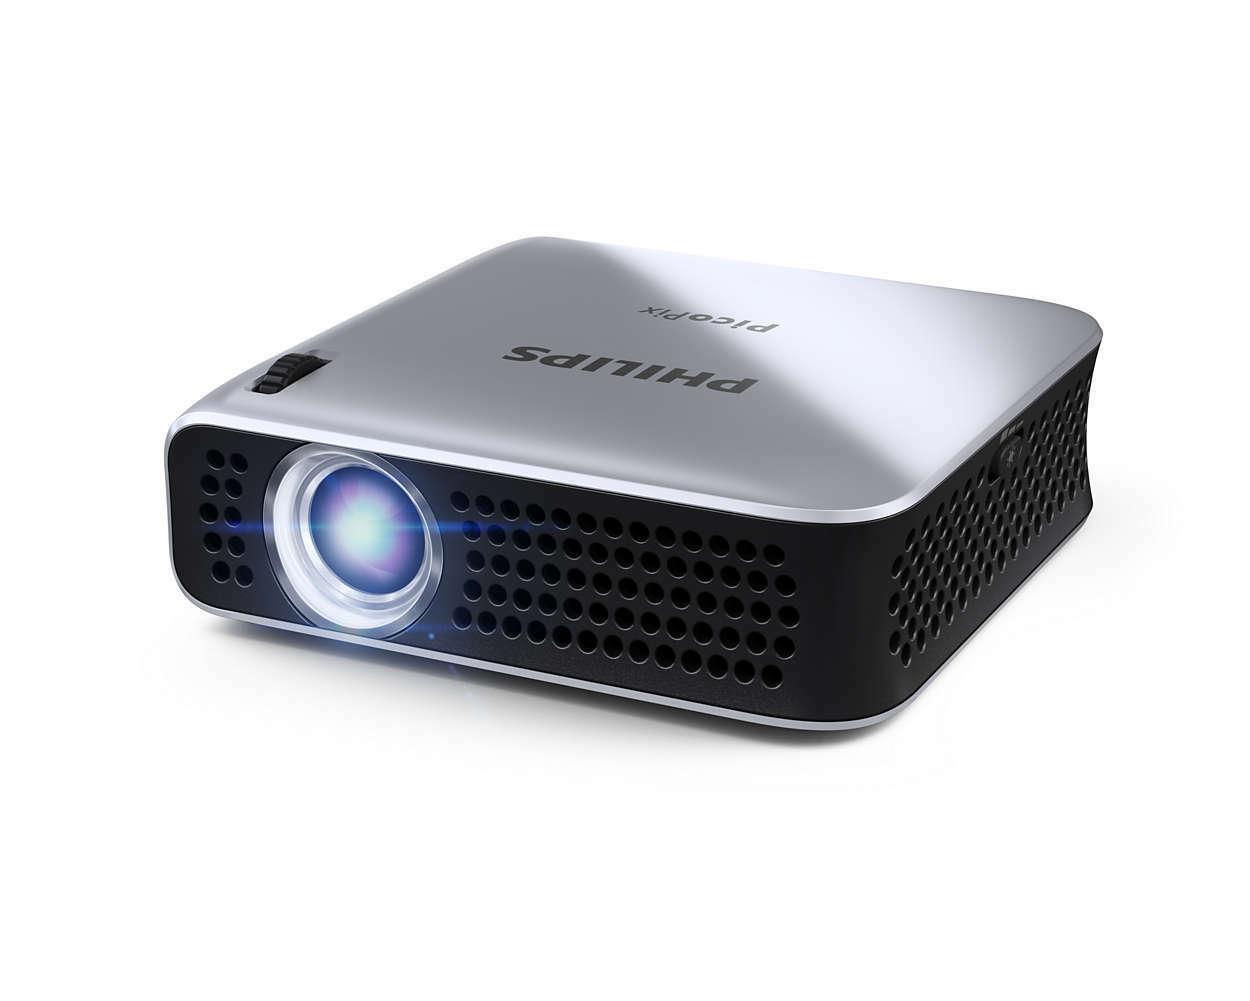 Philips pico ppx4010 hdmi portable pocket projector for Hdmi mobile projector